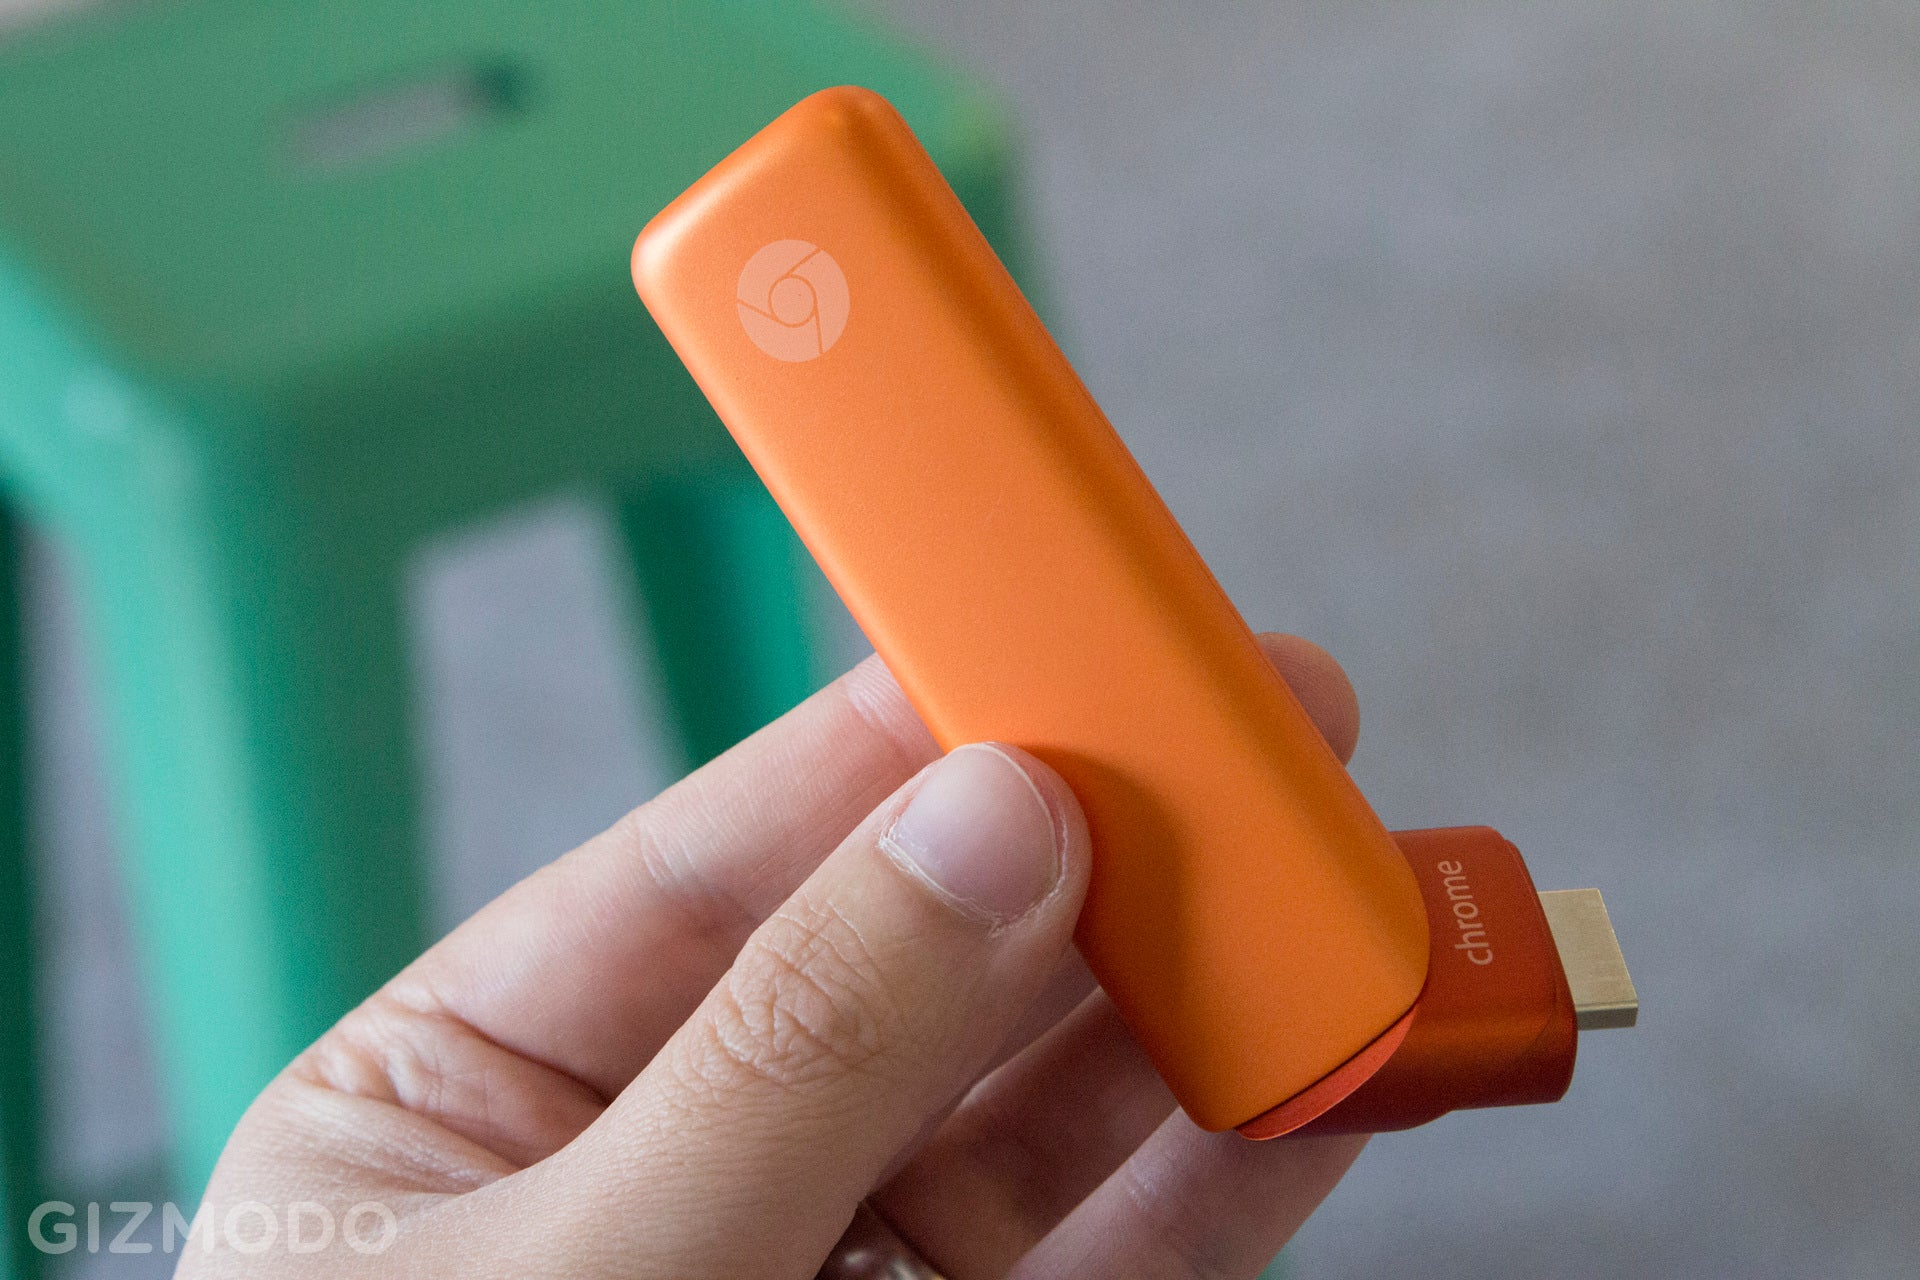 Google's Chromebit Turns Any TV Into a Chrome PC for Under $US100